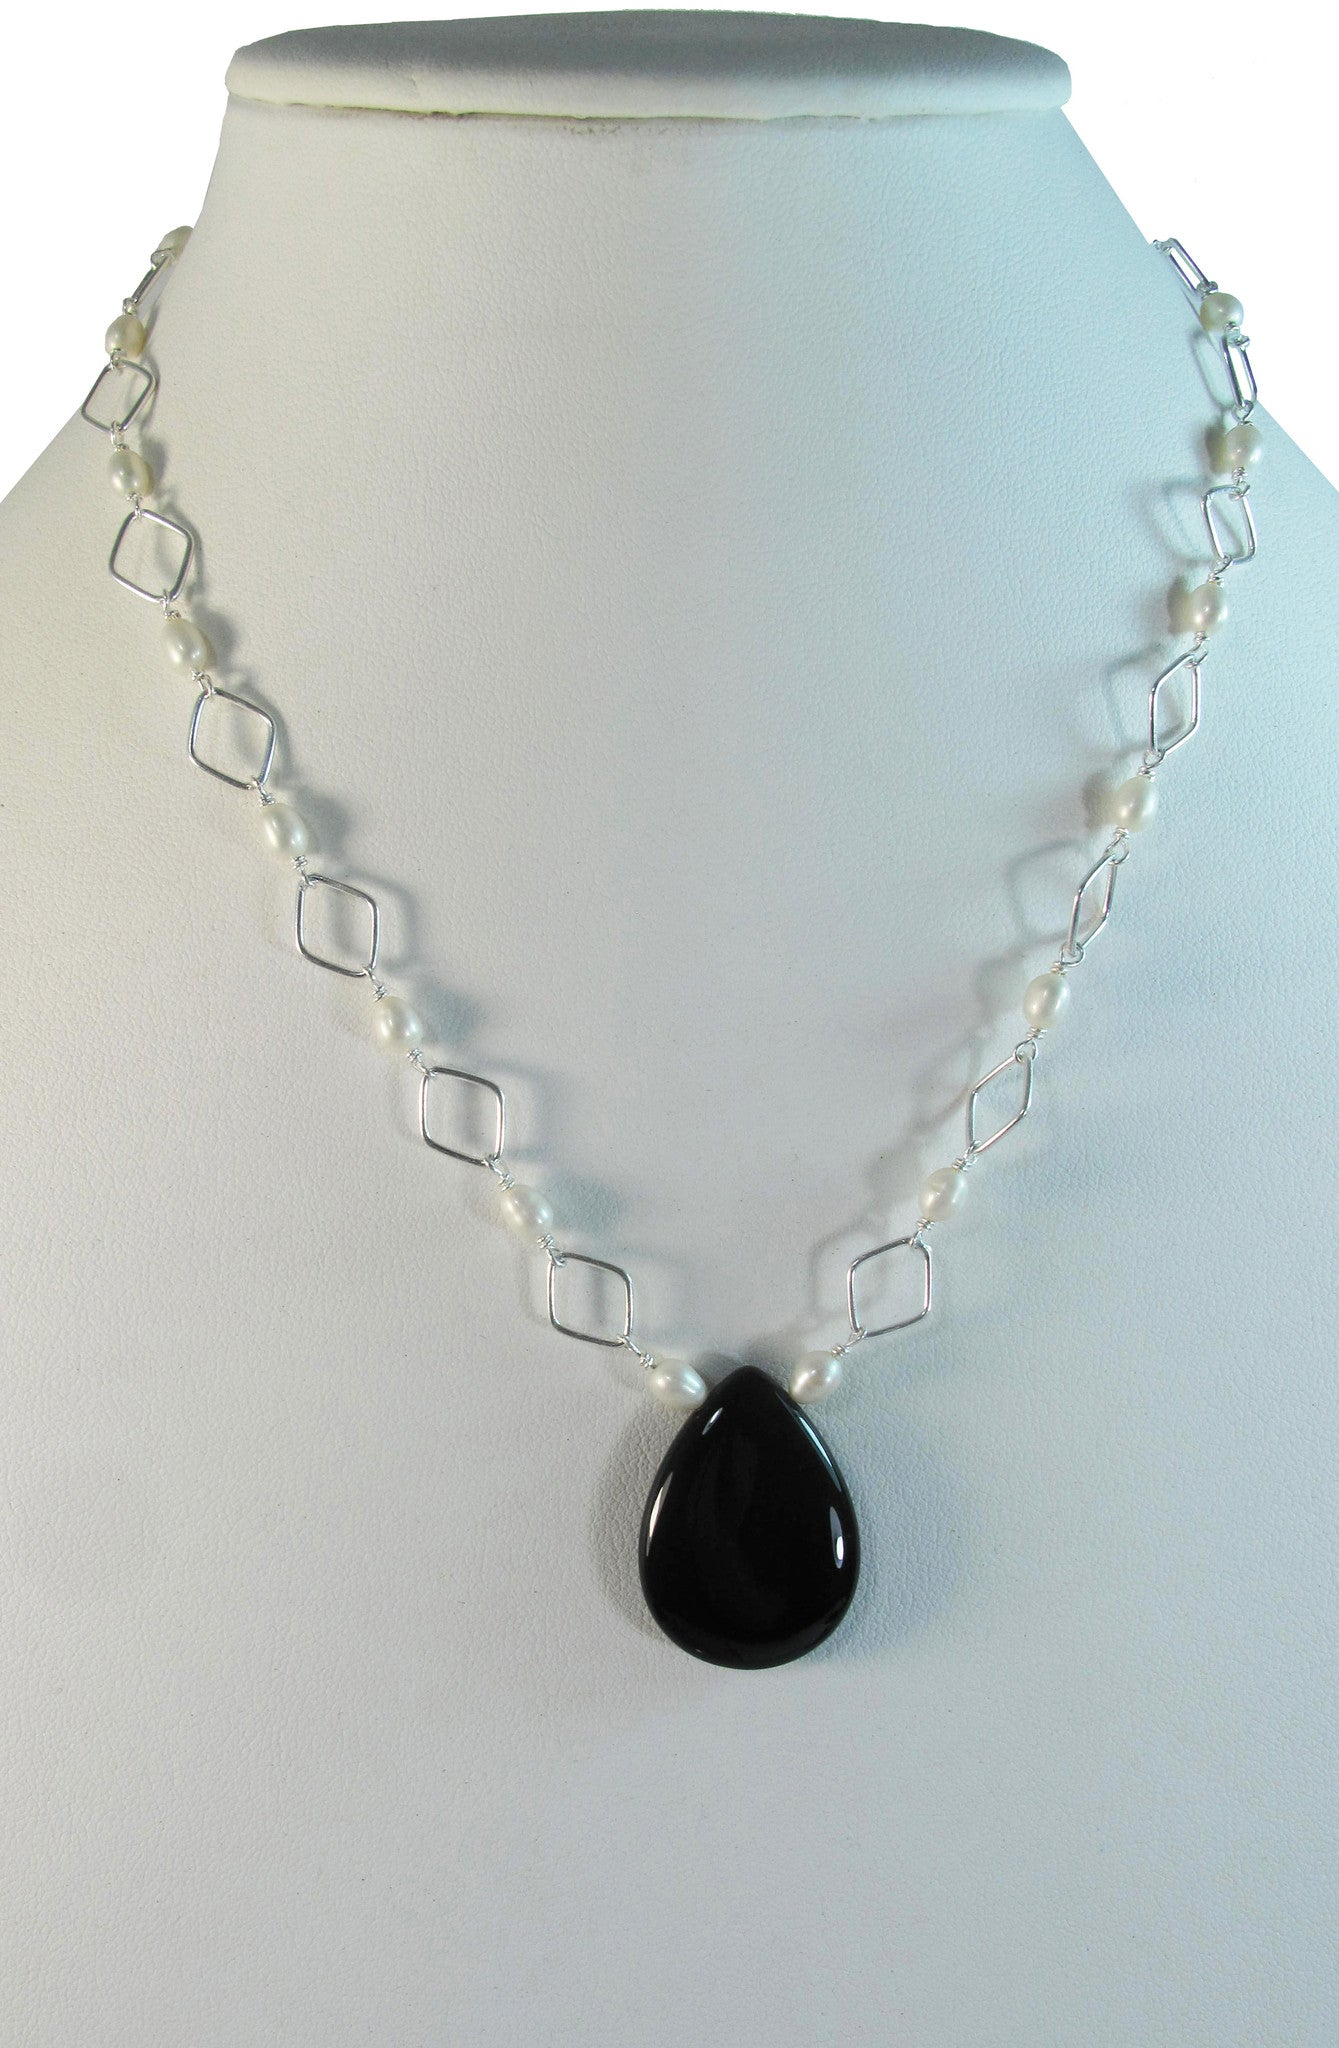 Onyx and Pearls Neck